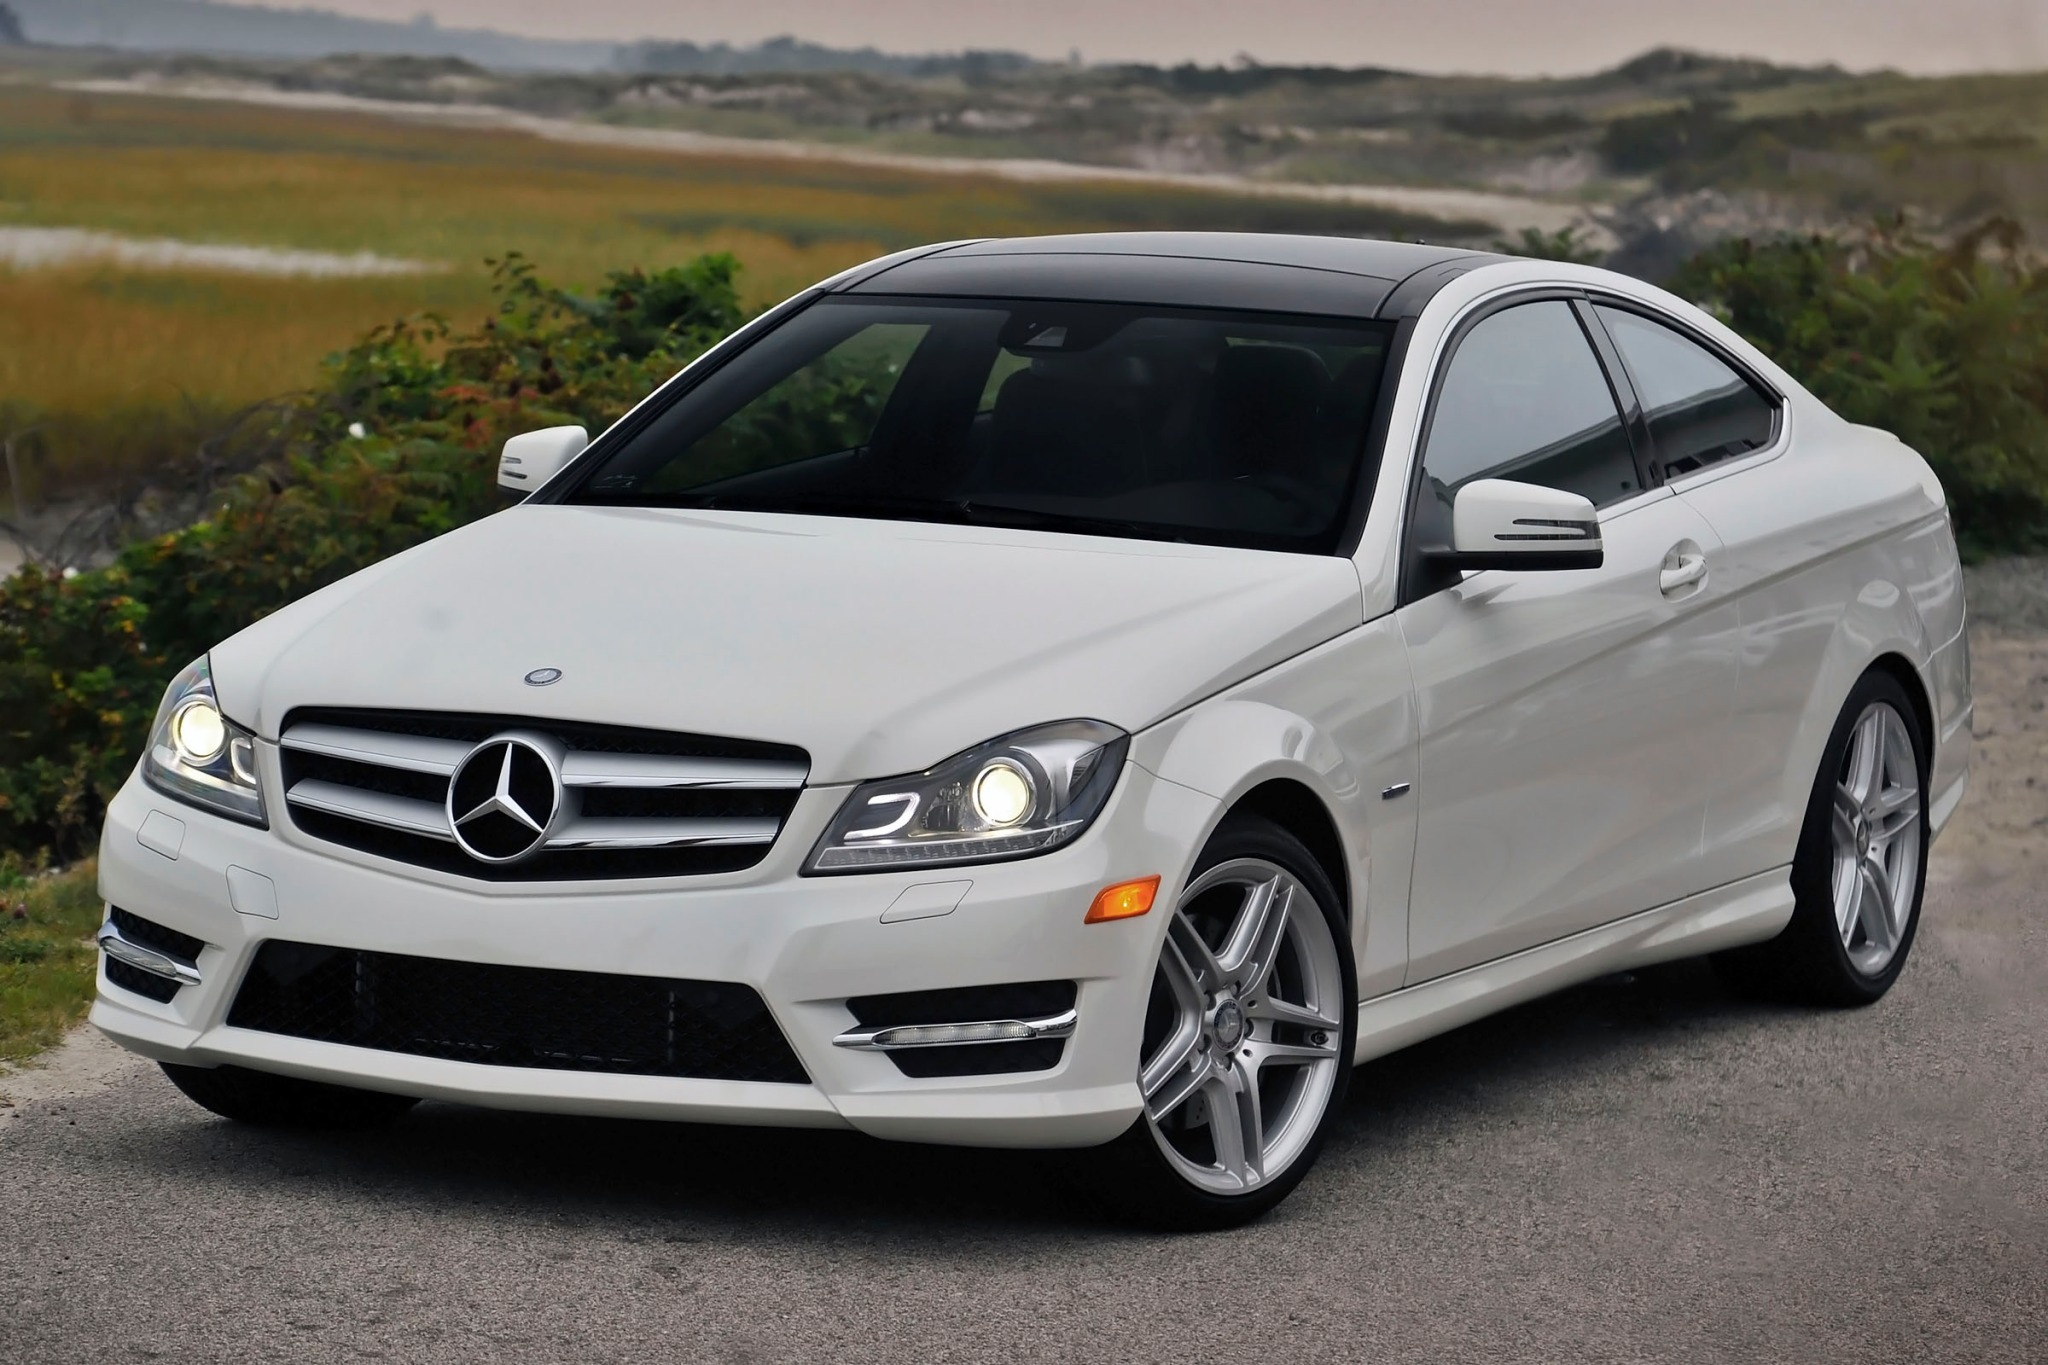 2014 mercedes-benz c-class - information and photos - zombiedrive